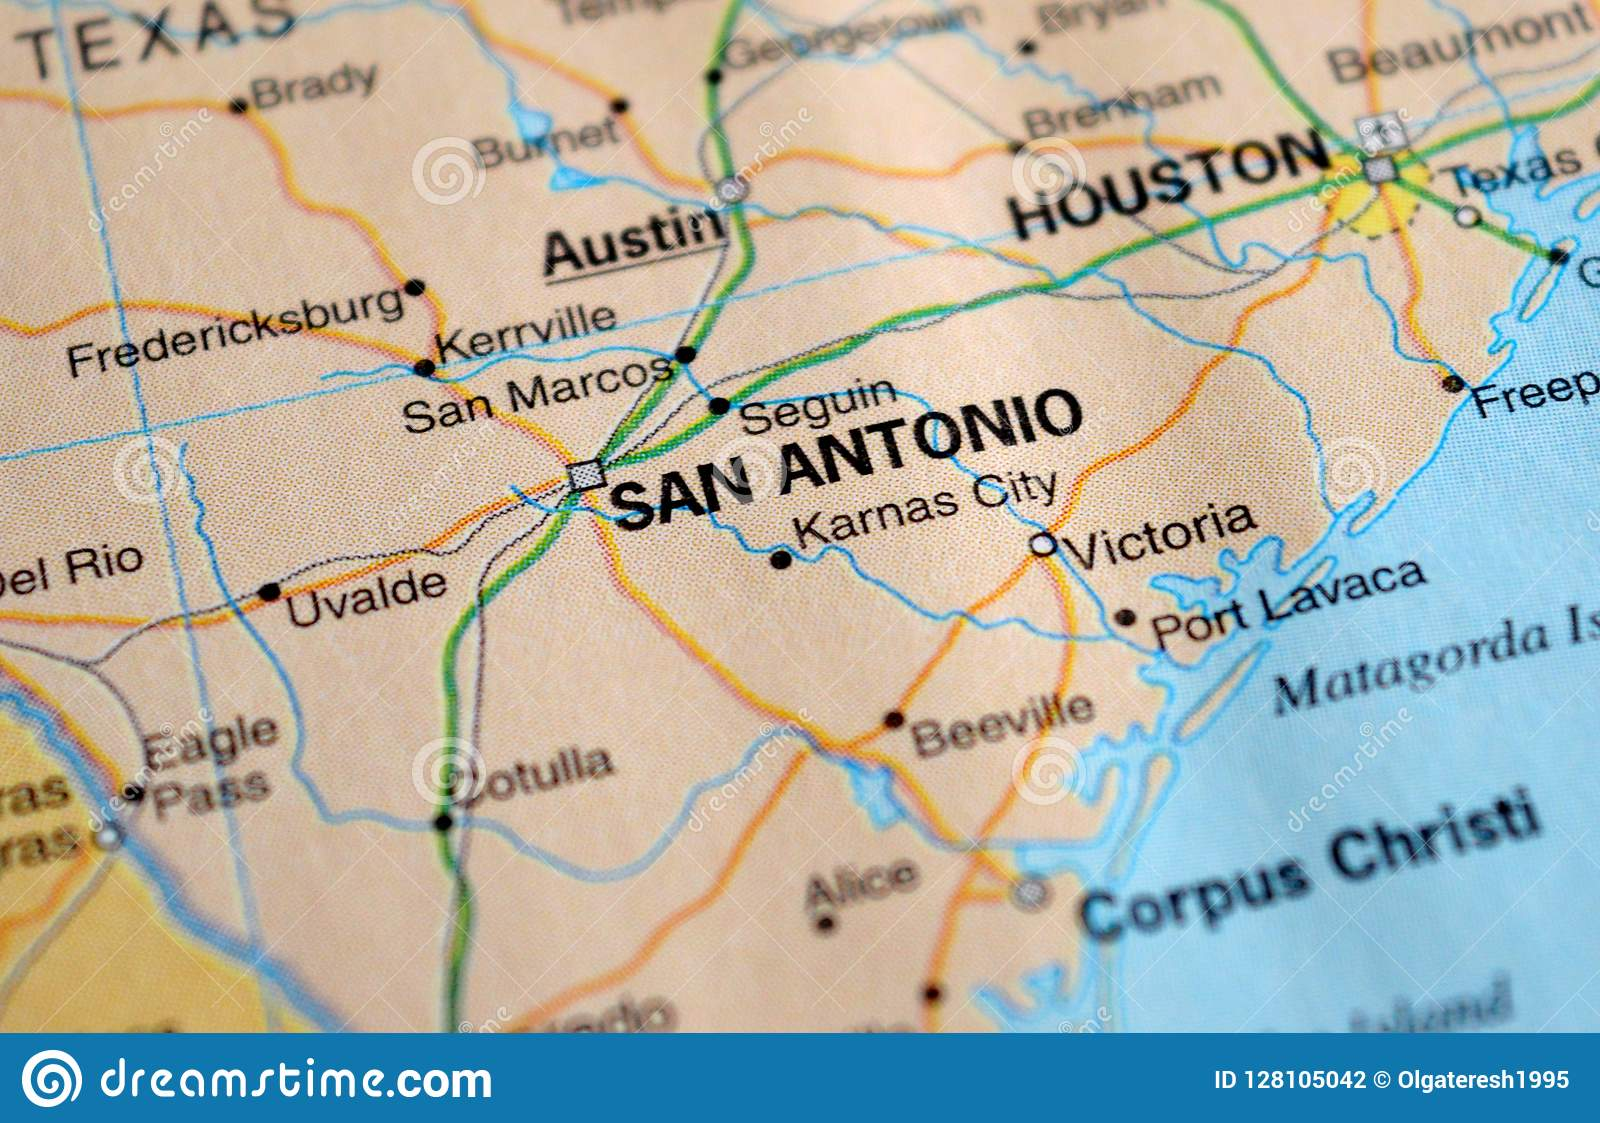 A Photo Of San Antonio On A Map Stock Photo - Image of ... on texas on map, webster on map, new orleans on map, corpus christi on map, commerce city on map, golden state on map, portland on us map, auburn hills on map, quad cities on map, plano on map, houston on map, la venta on map, south bend on map, white plains on map, bexar county on map, kansas city on map, leon county on map, palo pinto county on map, abilene on map, st john's on map,